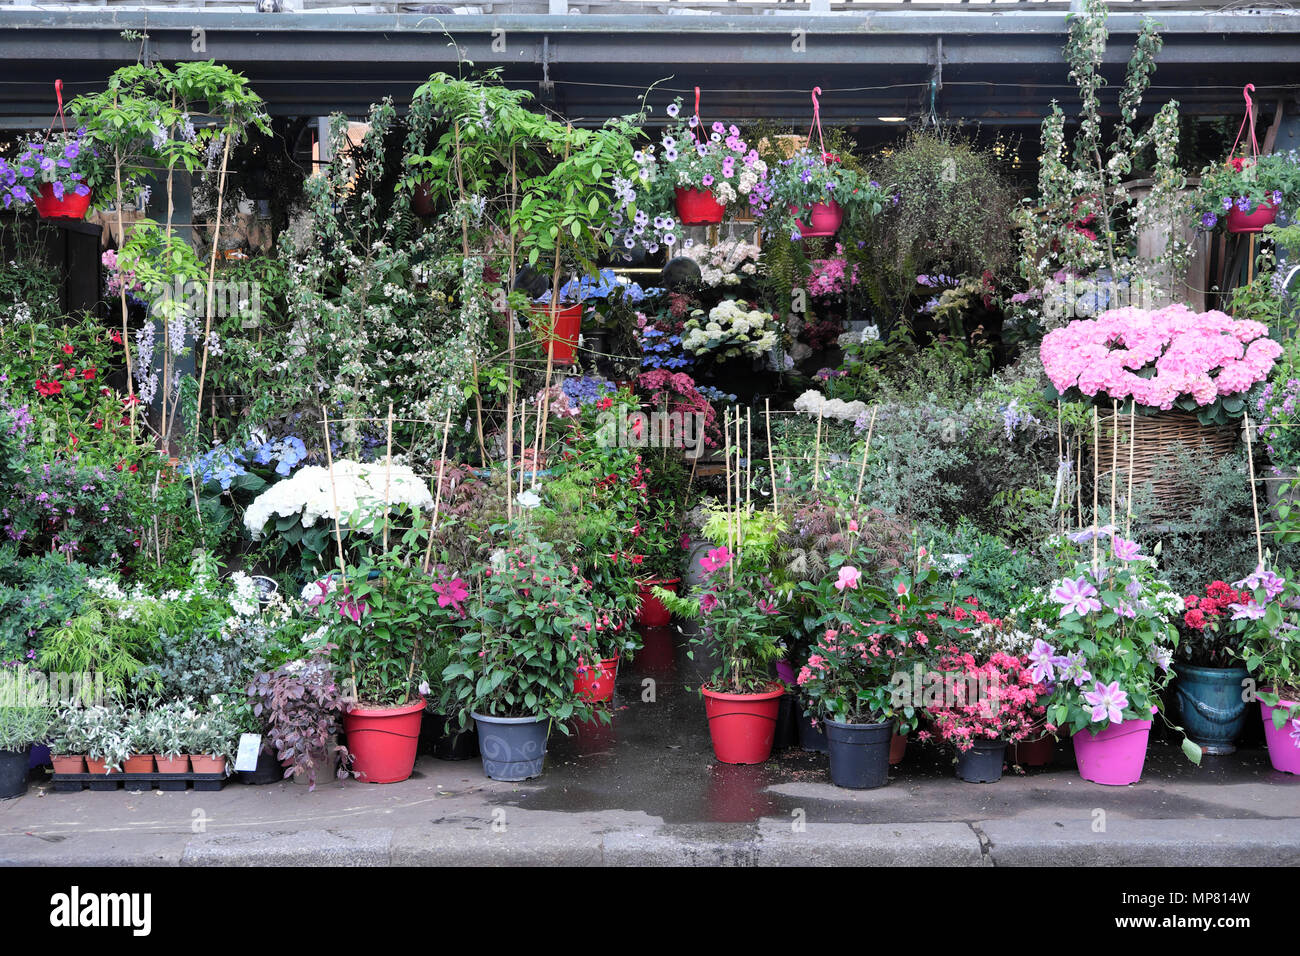 Paris Flower Market flowers in a group of garden plant pots grouped at Place Lepine in Île de la Cité Paris, France Europe EU  KATHY DEWITT - Stock Image